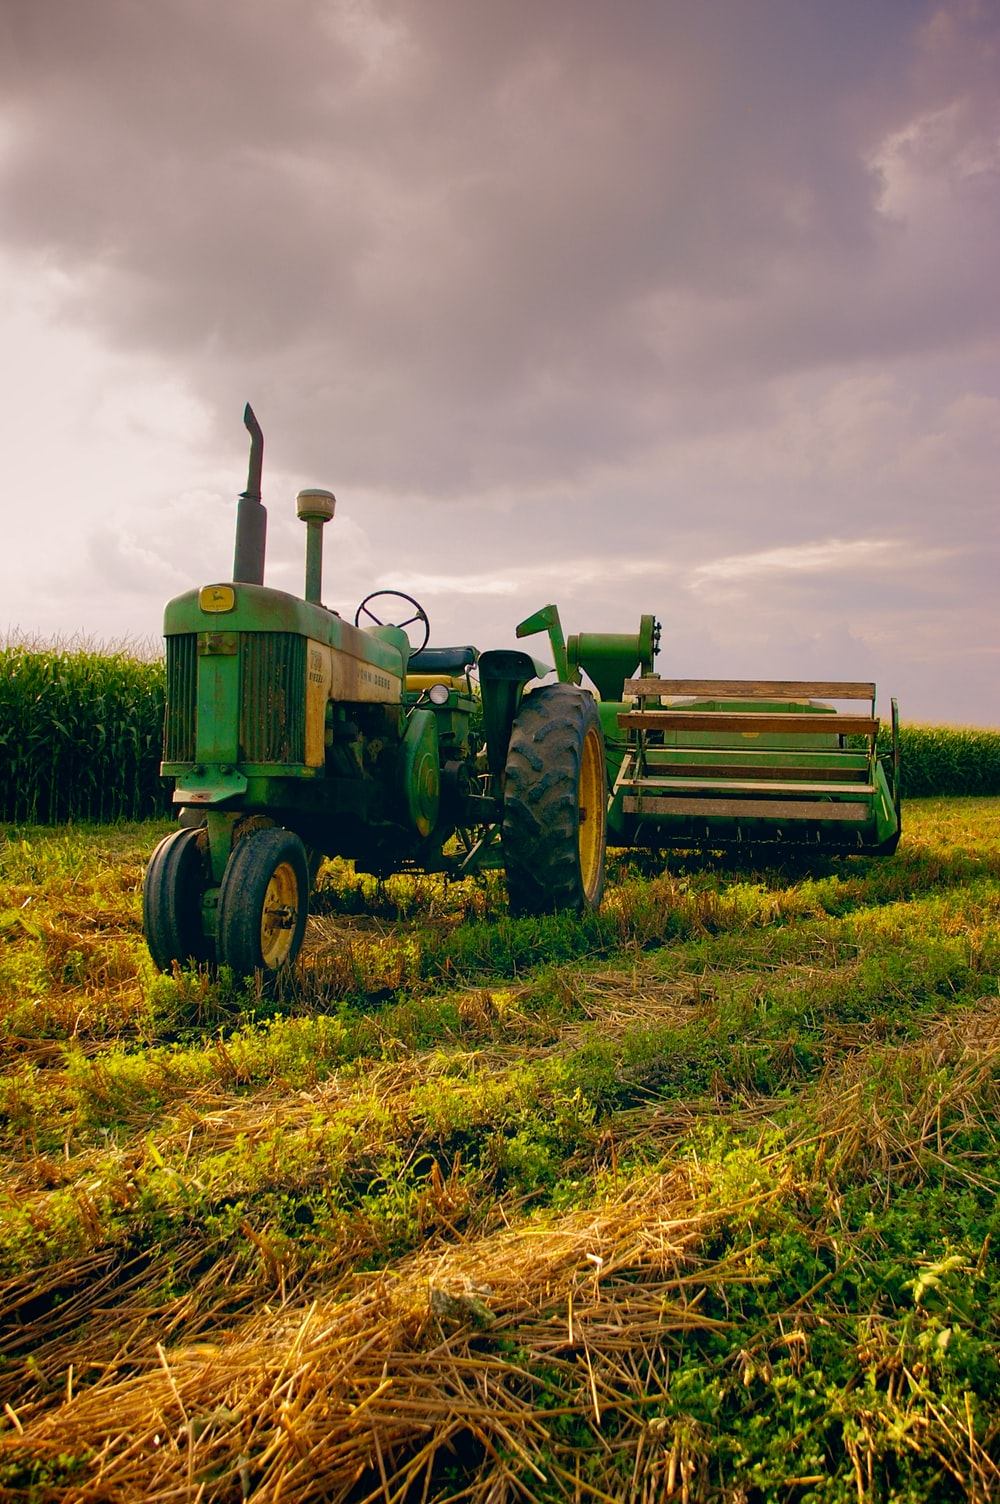 green and yellow tractor